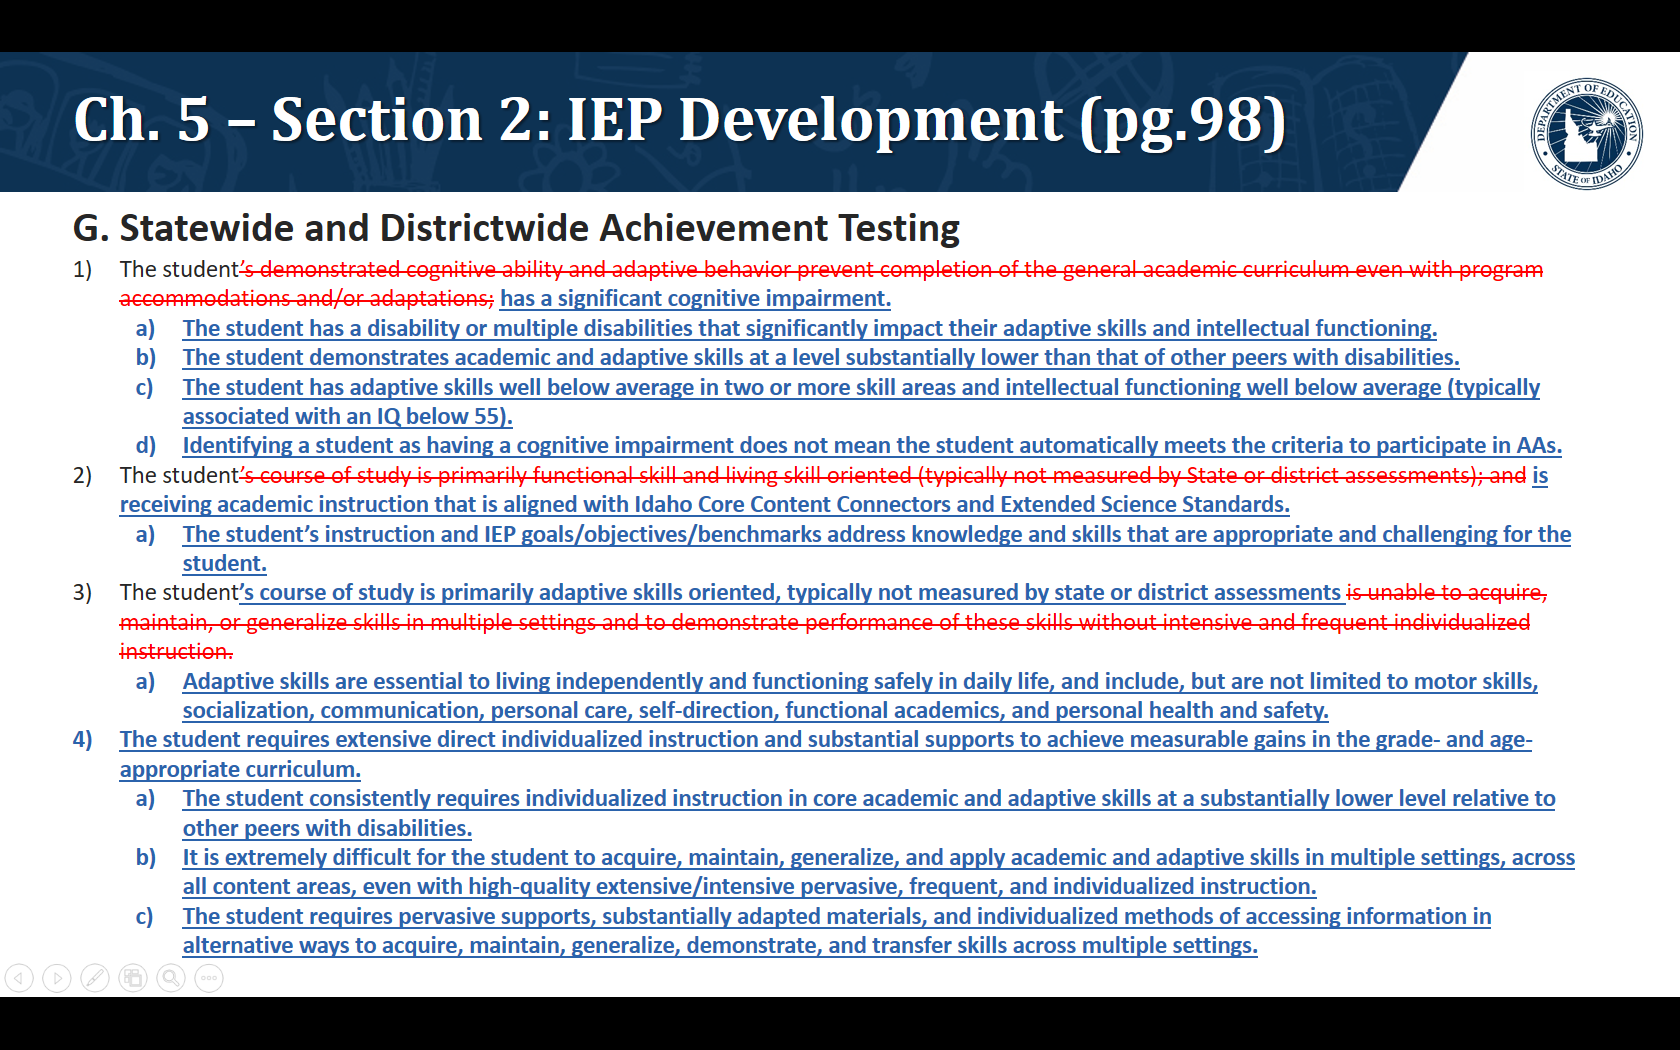 G. Statewide and Districtwide Achievement Testing. The student has a significant cognitive impairment. The student has a disability or multiple disabilities that significantly impact their adaptive skills and intellectual functioning. The student demonstrates academic and adaptive skills at a level substantially lower than that of other peers with disabilities. The student has adaptive skills well below average in two or more skill areas and intellectual functioning well below average (typically associated with an IQ below 55). Identifying a student as having a cognitive impairment does not mean the student automatically meets the criteria to participate in AAs.   The student is receiving academic instruction that is aligned with Idaho Core Content Connectors and Extended Science Standards. The student's instruction and IEP goals/objectives/benchmarks address knowledge and skills that are appropriate and challenging for the student. The student's course of study is primarily adaptive skills oriented, typically not measured by state or district assessments Adaptive skills are essential to living independently and functioning safely in daily life, and include, but are not limited to motor skills, socialization, communication, personal care, self-direction, functional academics, and personal health and safety. The student requires extensive direct individualized instruction and substantial supports to achieve measurable gains in the grade- and age-appropriate curriculum. The student consistently requires individualized instruction in core academic and adaptive skills at a substantially lower level relative to other peers with disabilities. It is extremely difficult for the student to acquire, maintain, generalize, and apply academic and adaptive skills in multiple settings, across all content areas, even with high-quality extensive/intensive pervasive, frequent, and individualized instruction. The student requires pervasive supports, substantially adapted materials, an